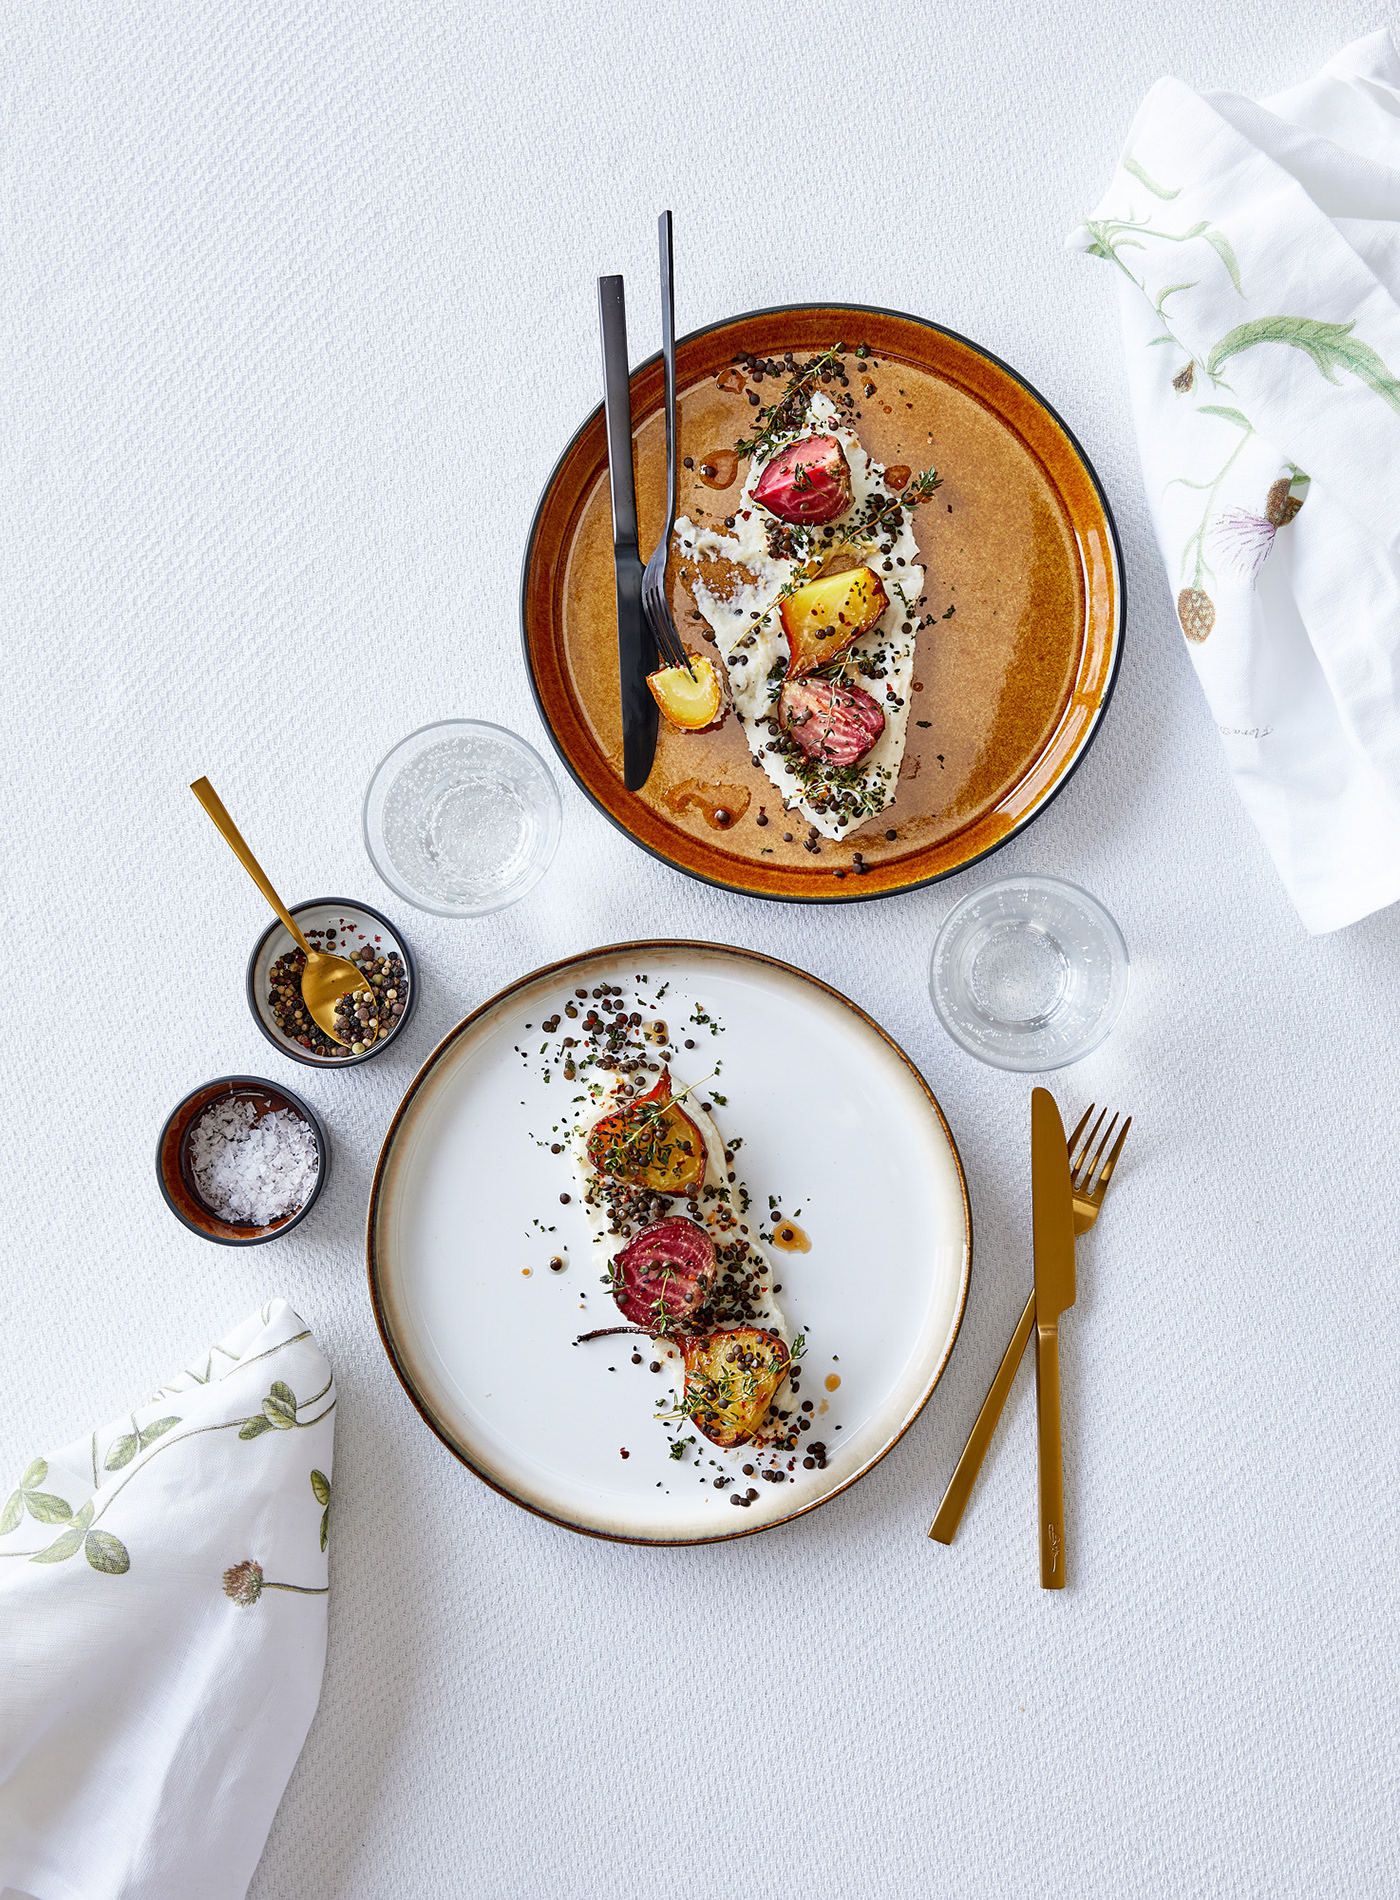 Foodstyling by Trine Laustsen for Christian Bitz